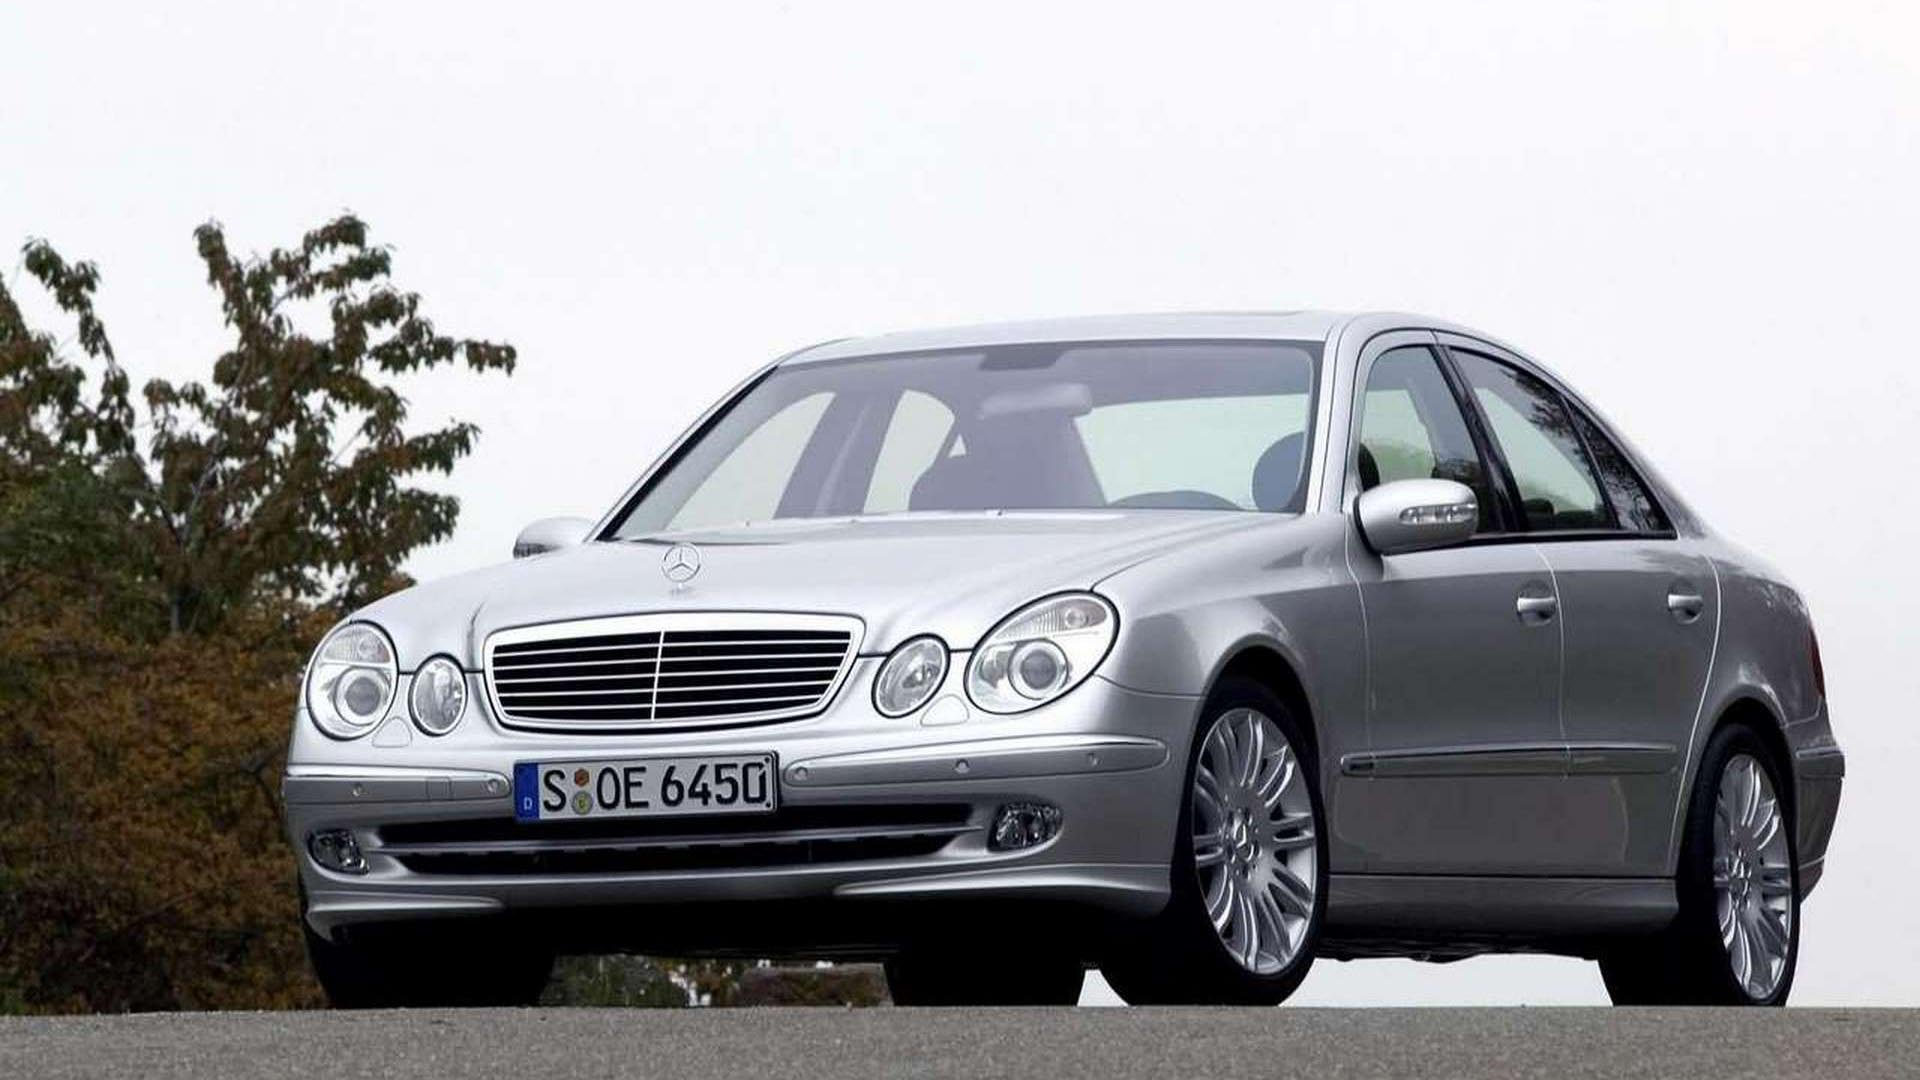 Cheap European Luxury Vehicles W211 front view